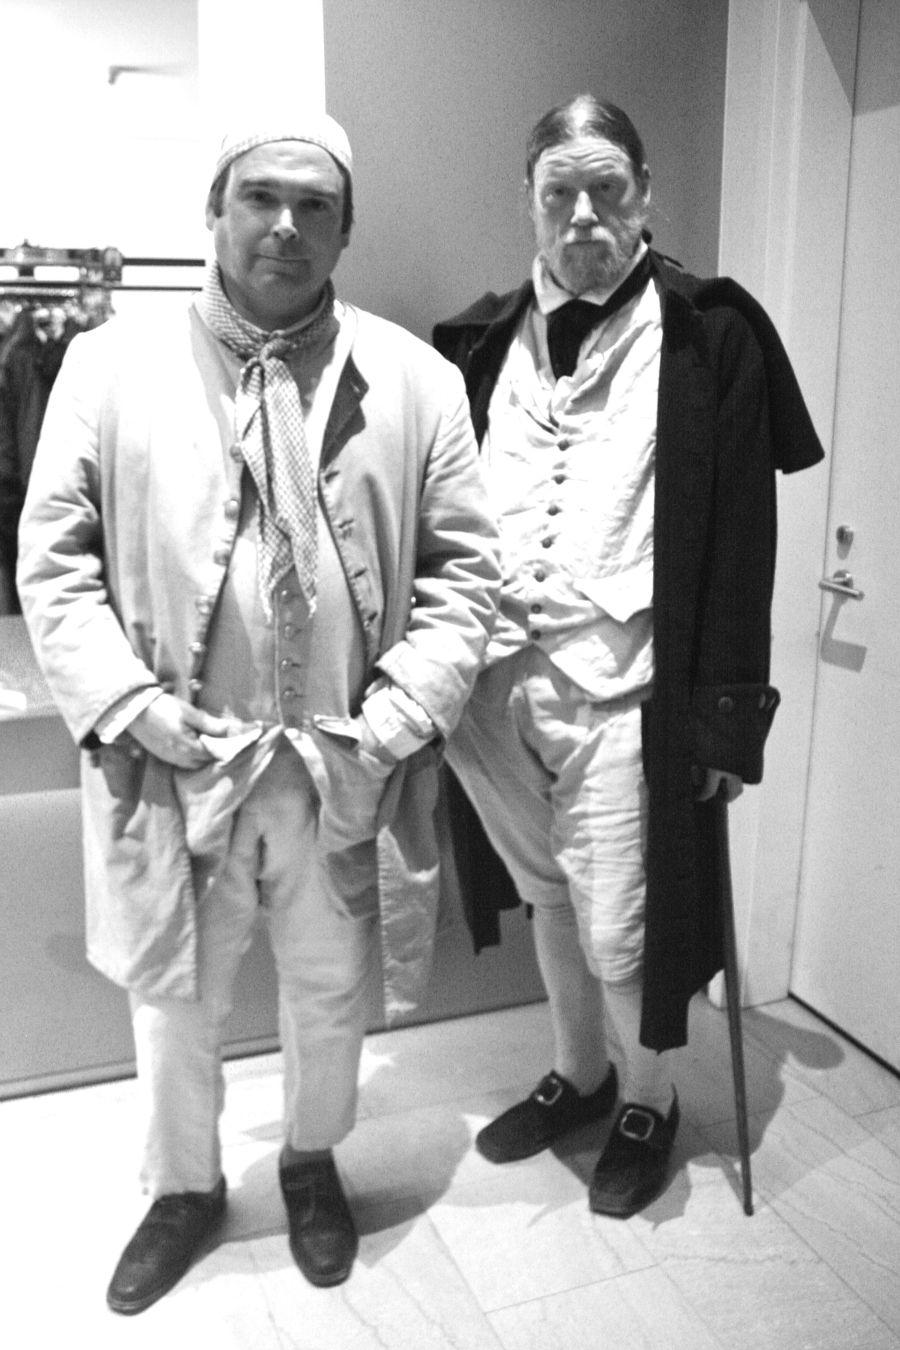 boston museum of fine arts men in colonial outfits